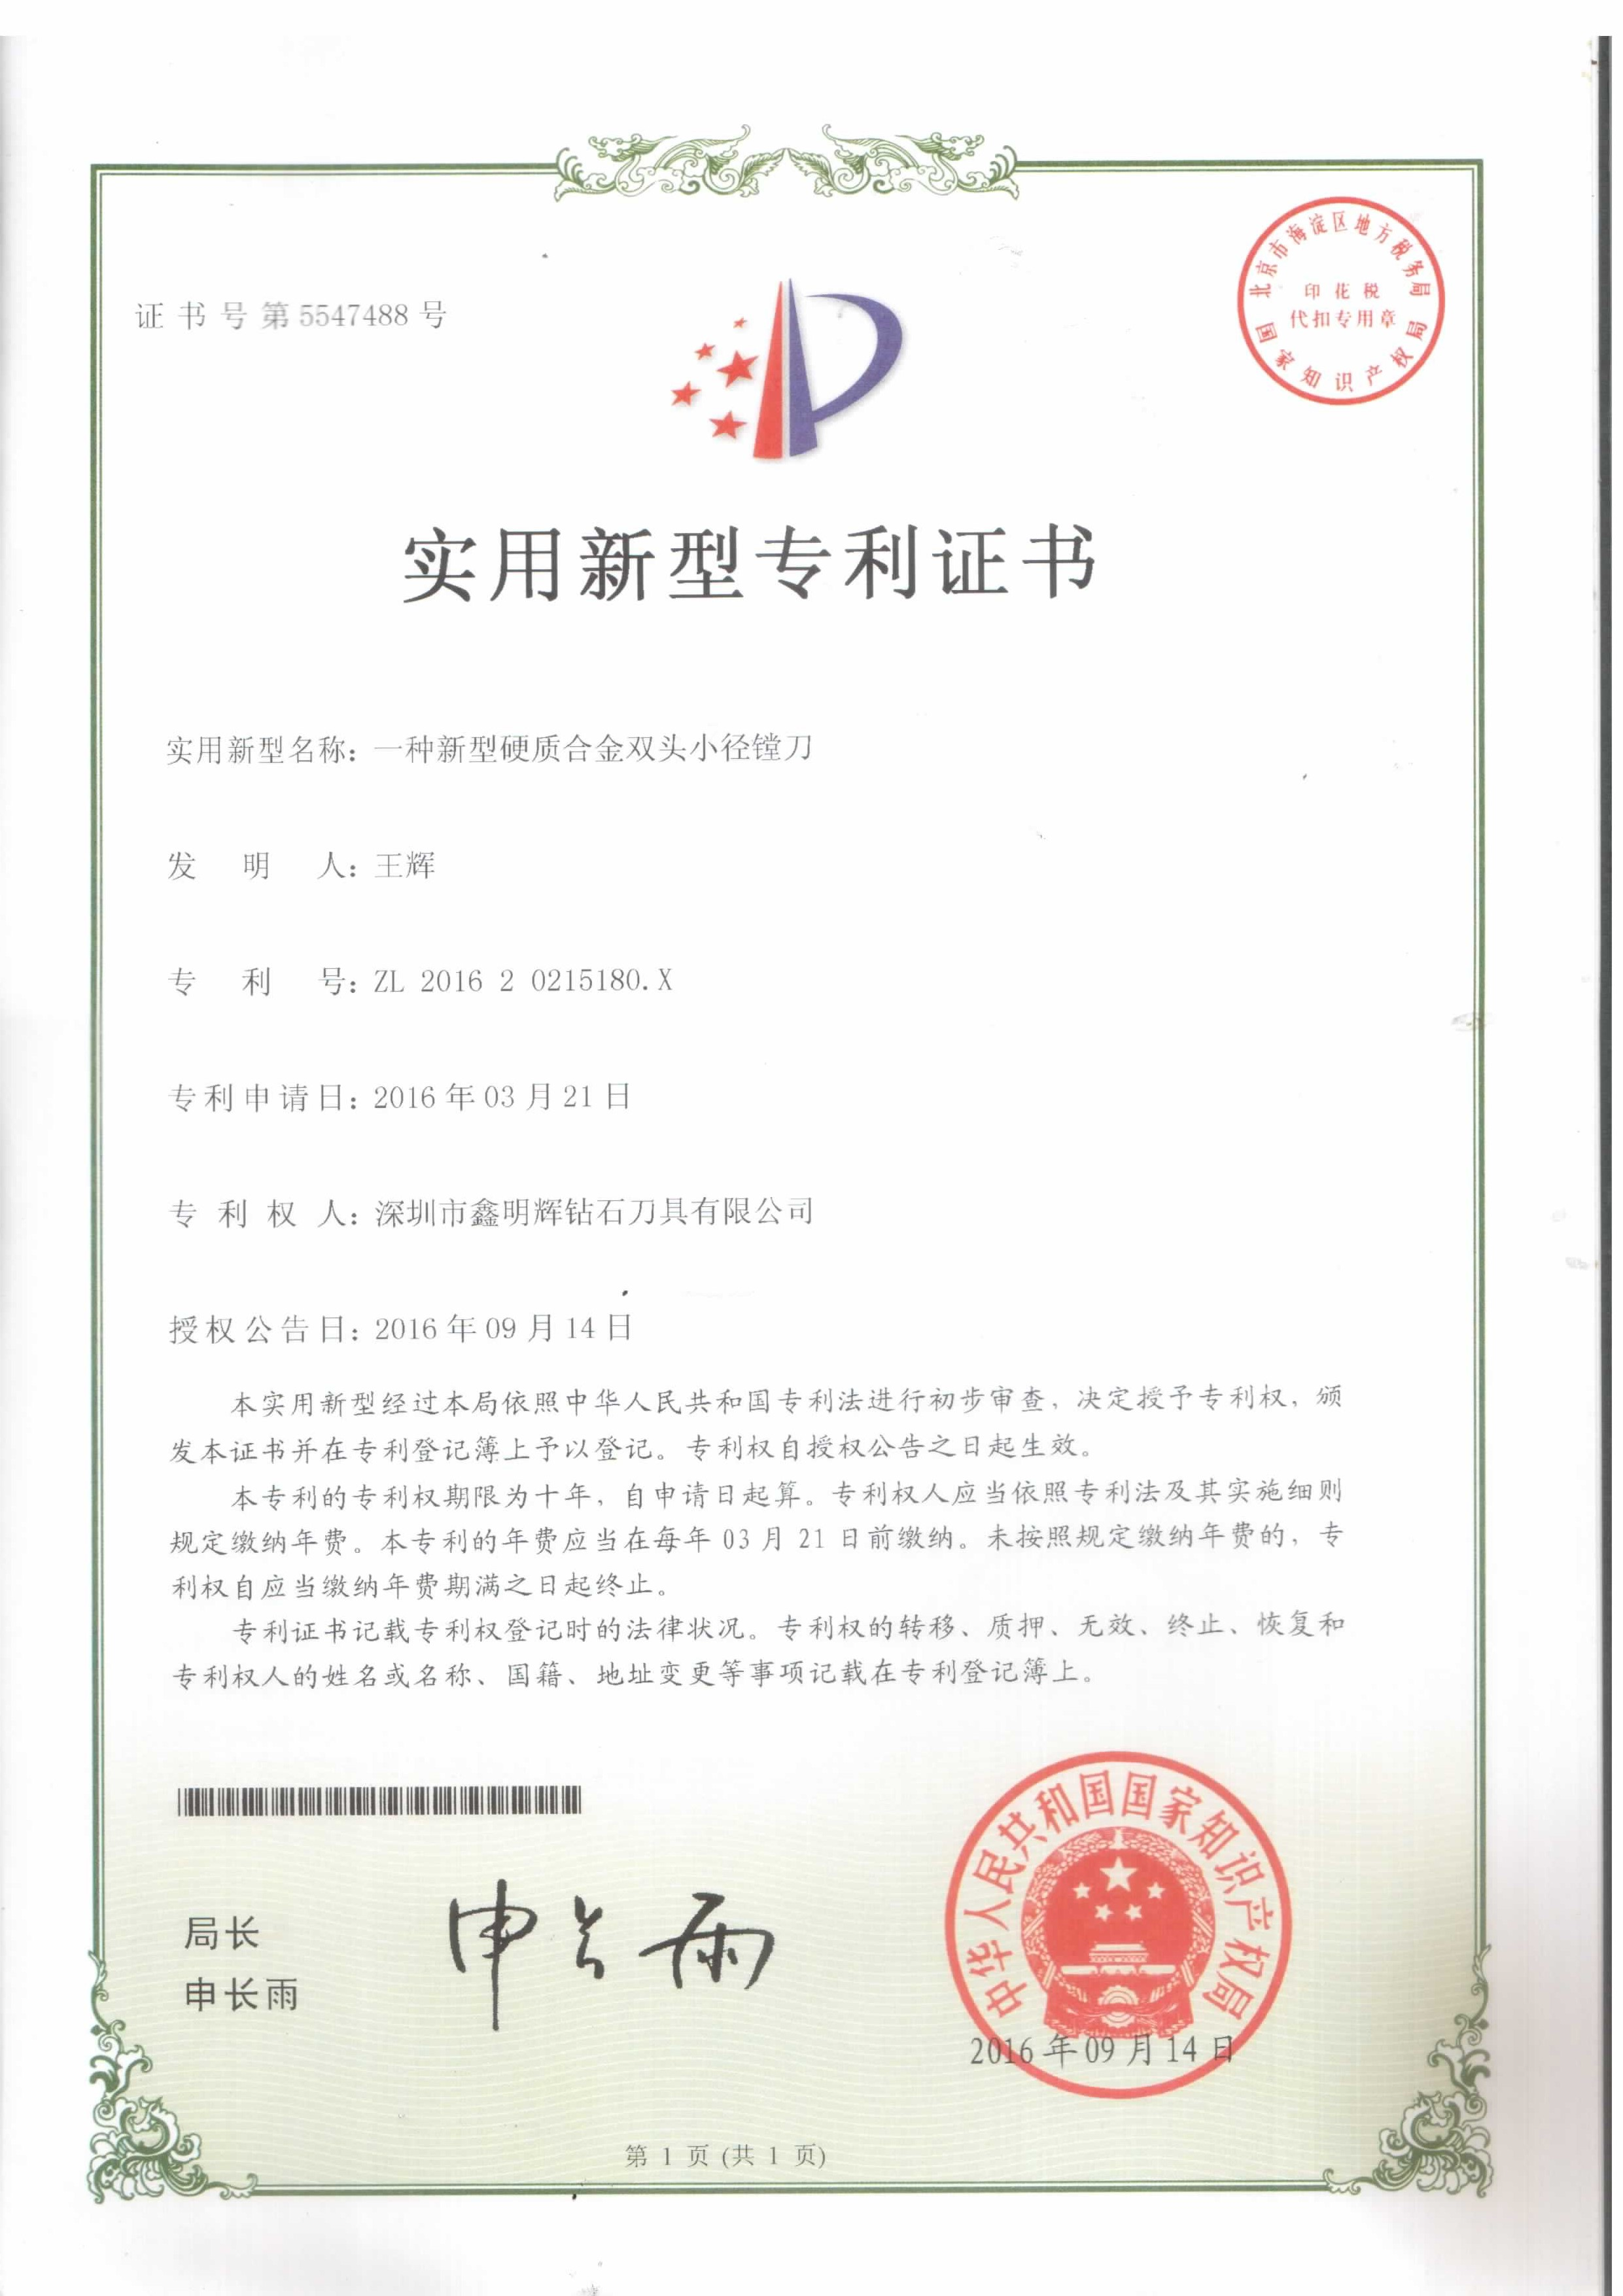 Carbide double-head small-diameter slot cutter patent certificate